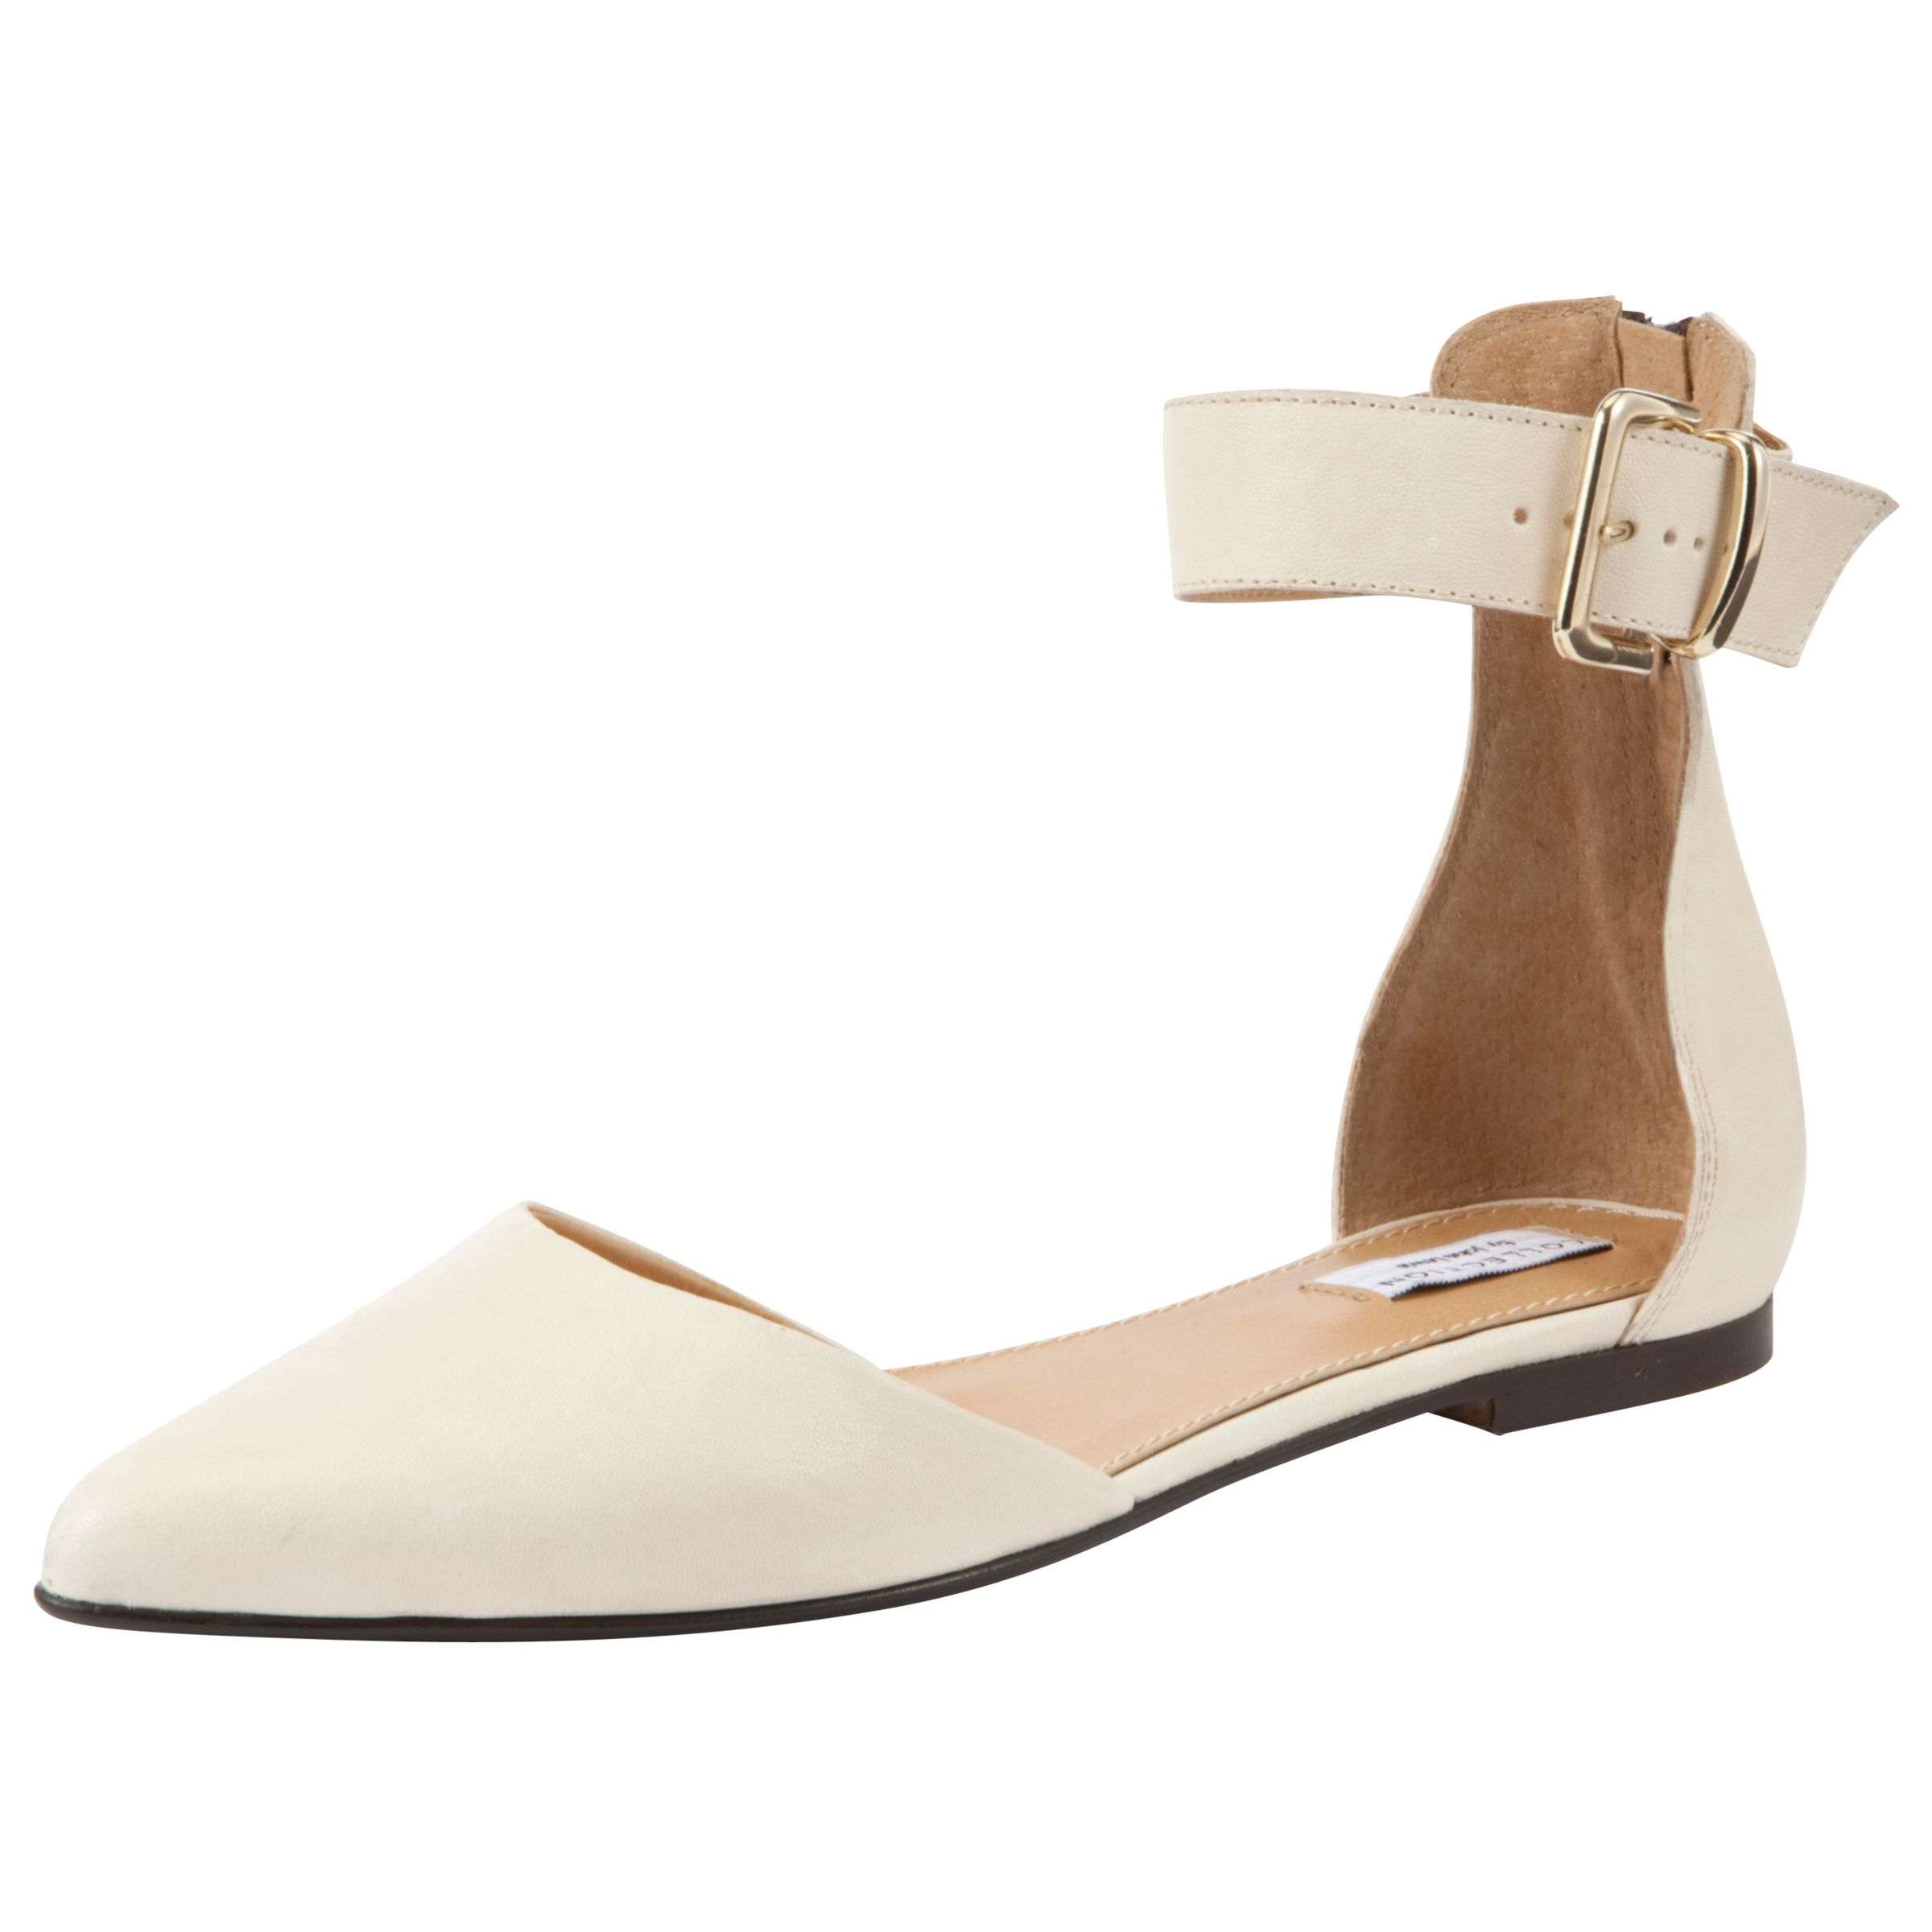 Collection By John Lewis Vermont Flat Court Shoes, Cream